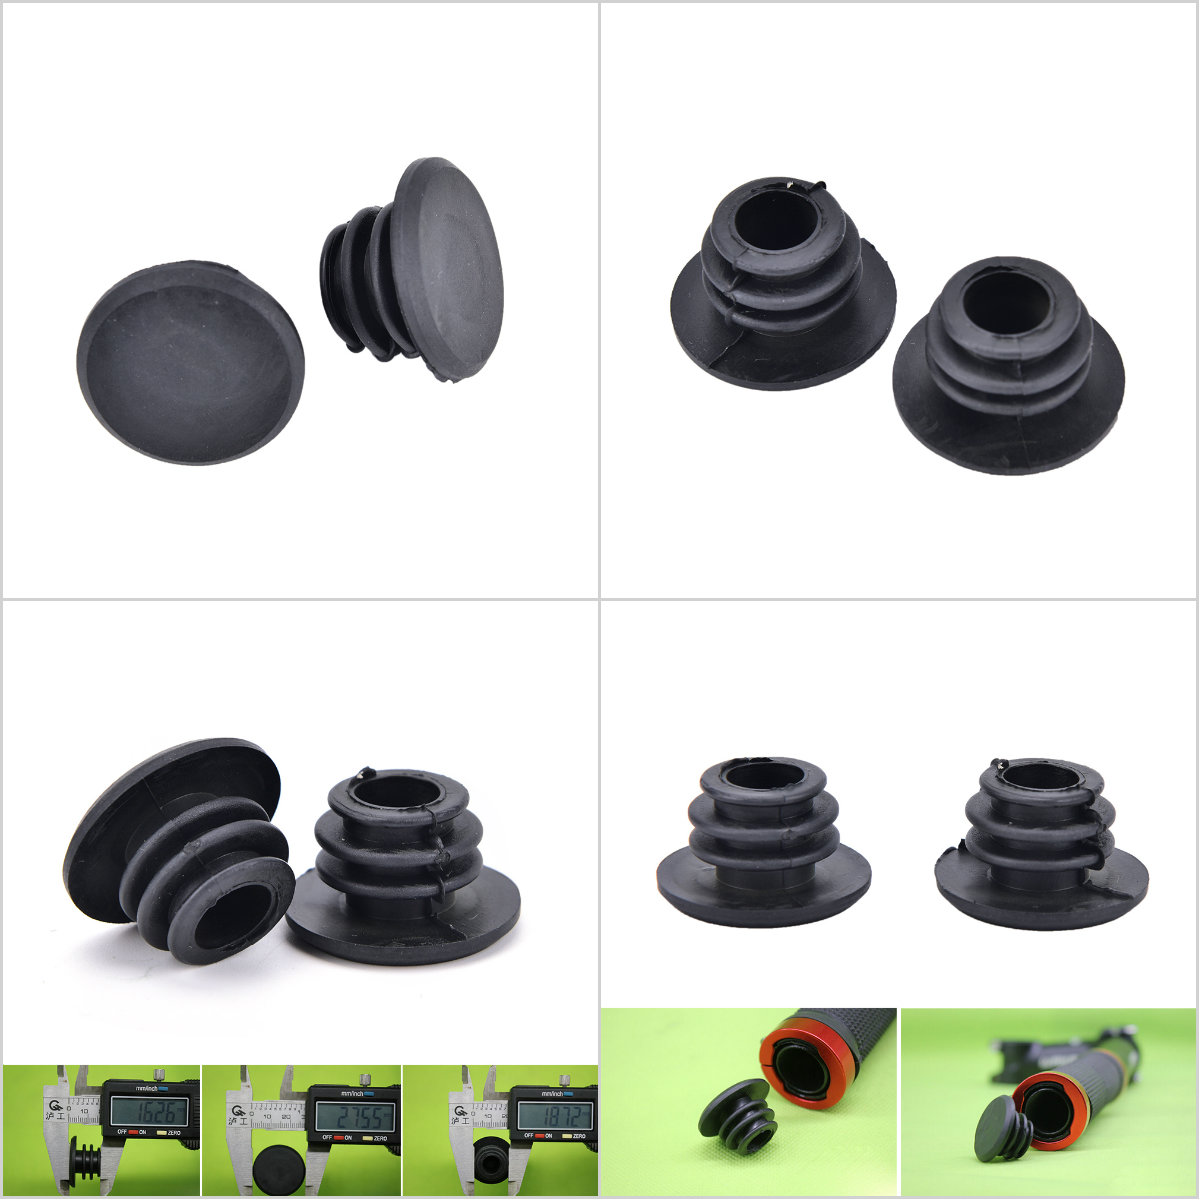 1 Pair Bicycle Handlebar Grip End Plugs Bicycle Grips Caps Stoppers Bikes Par/%x